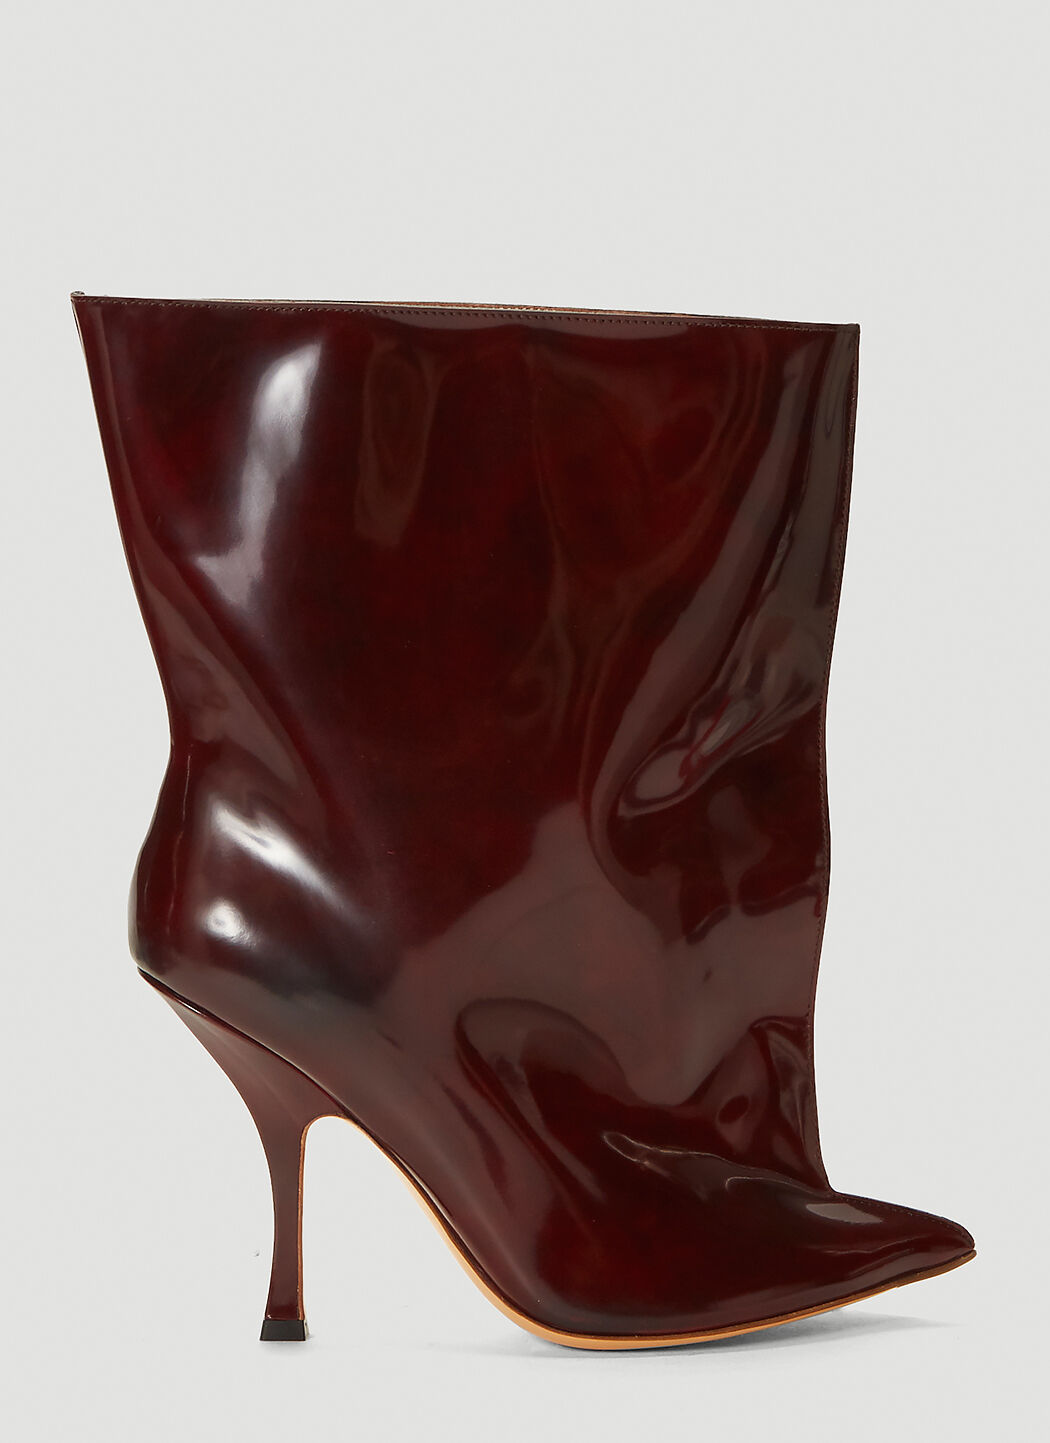 Y/Project Tubular Ankle Boots in